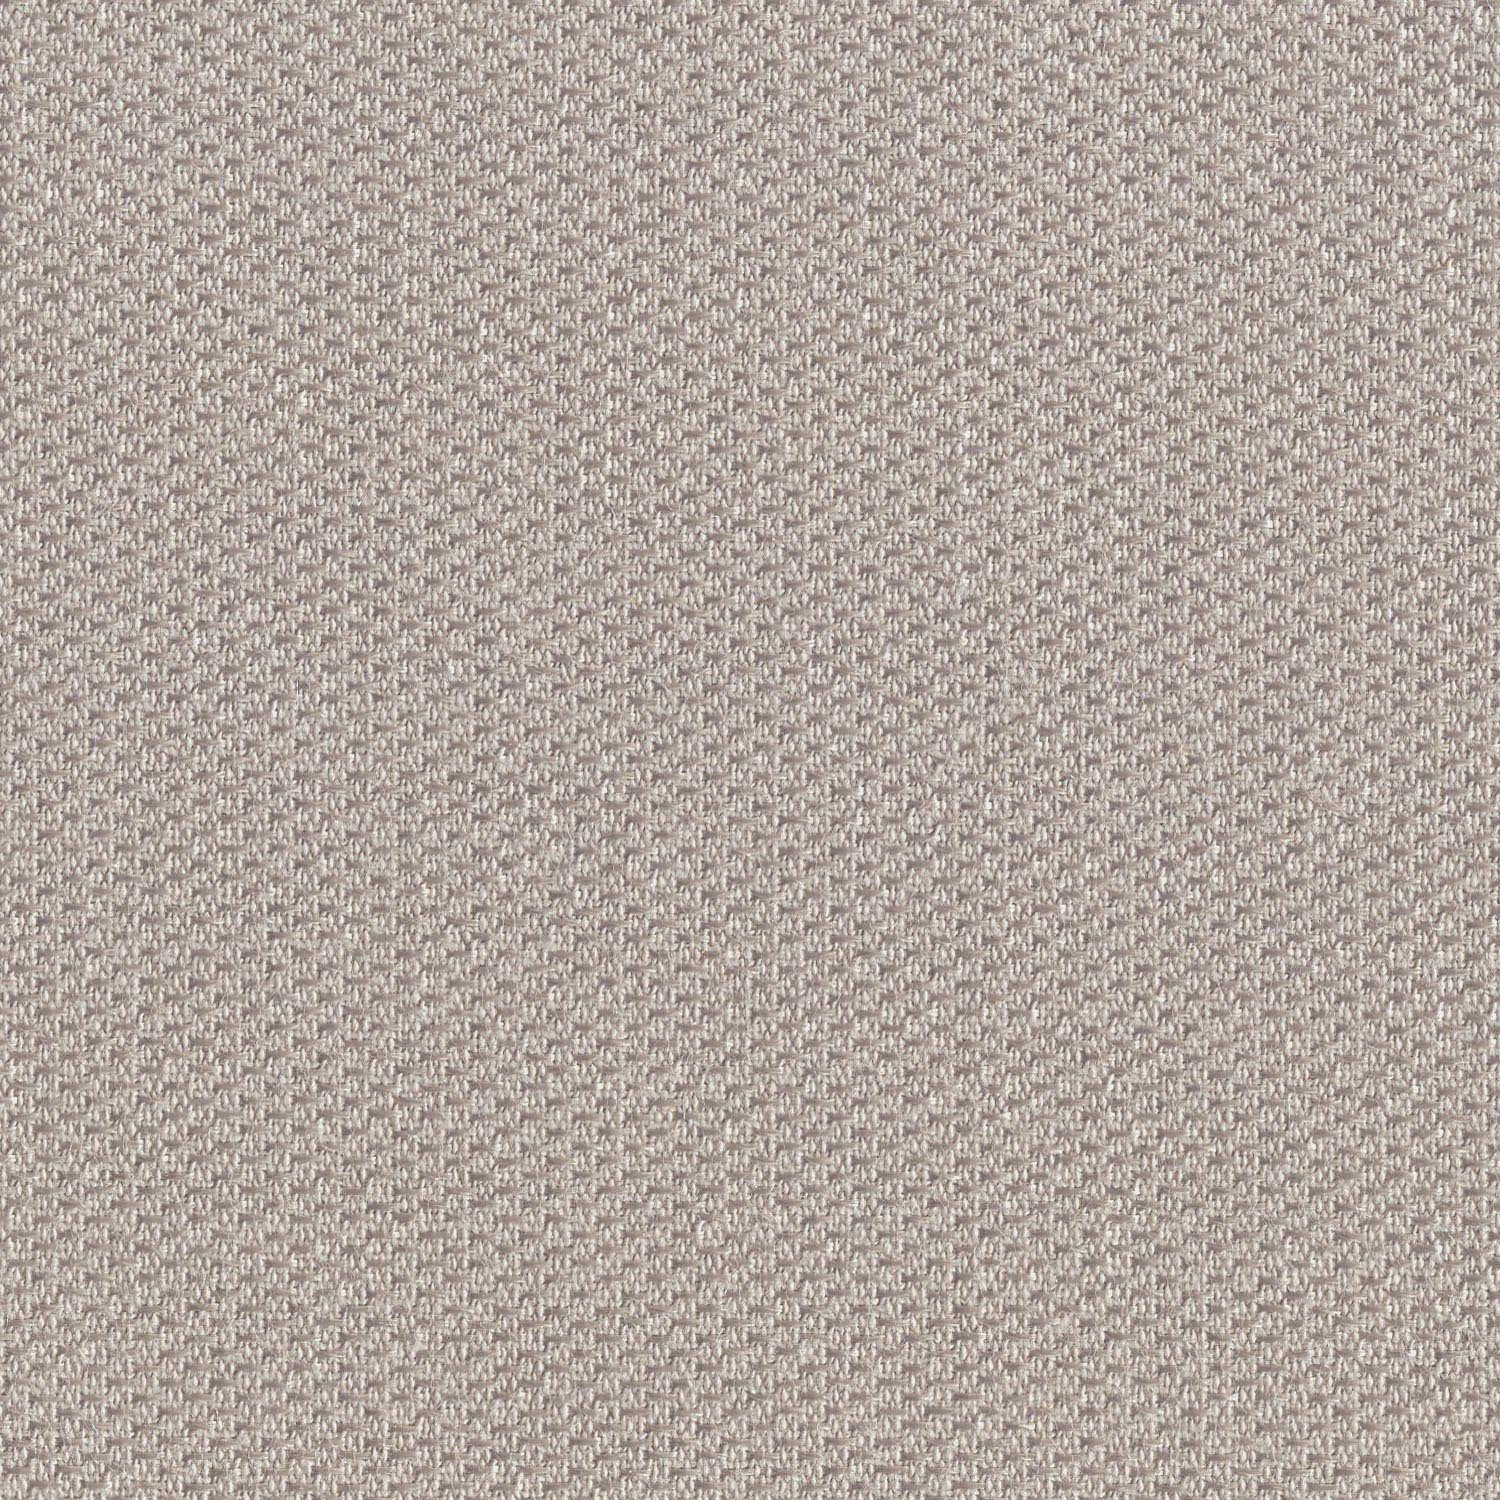 Guilford Of Maine Acoustic Speaker Grill Fabric